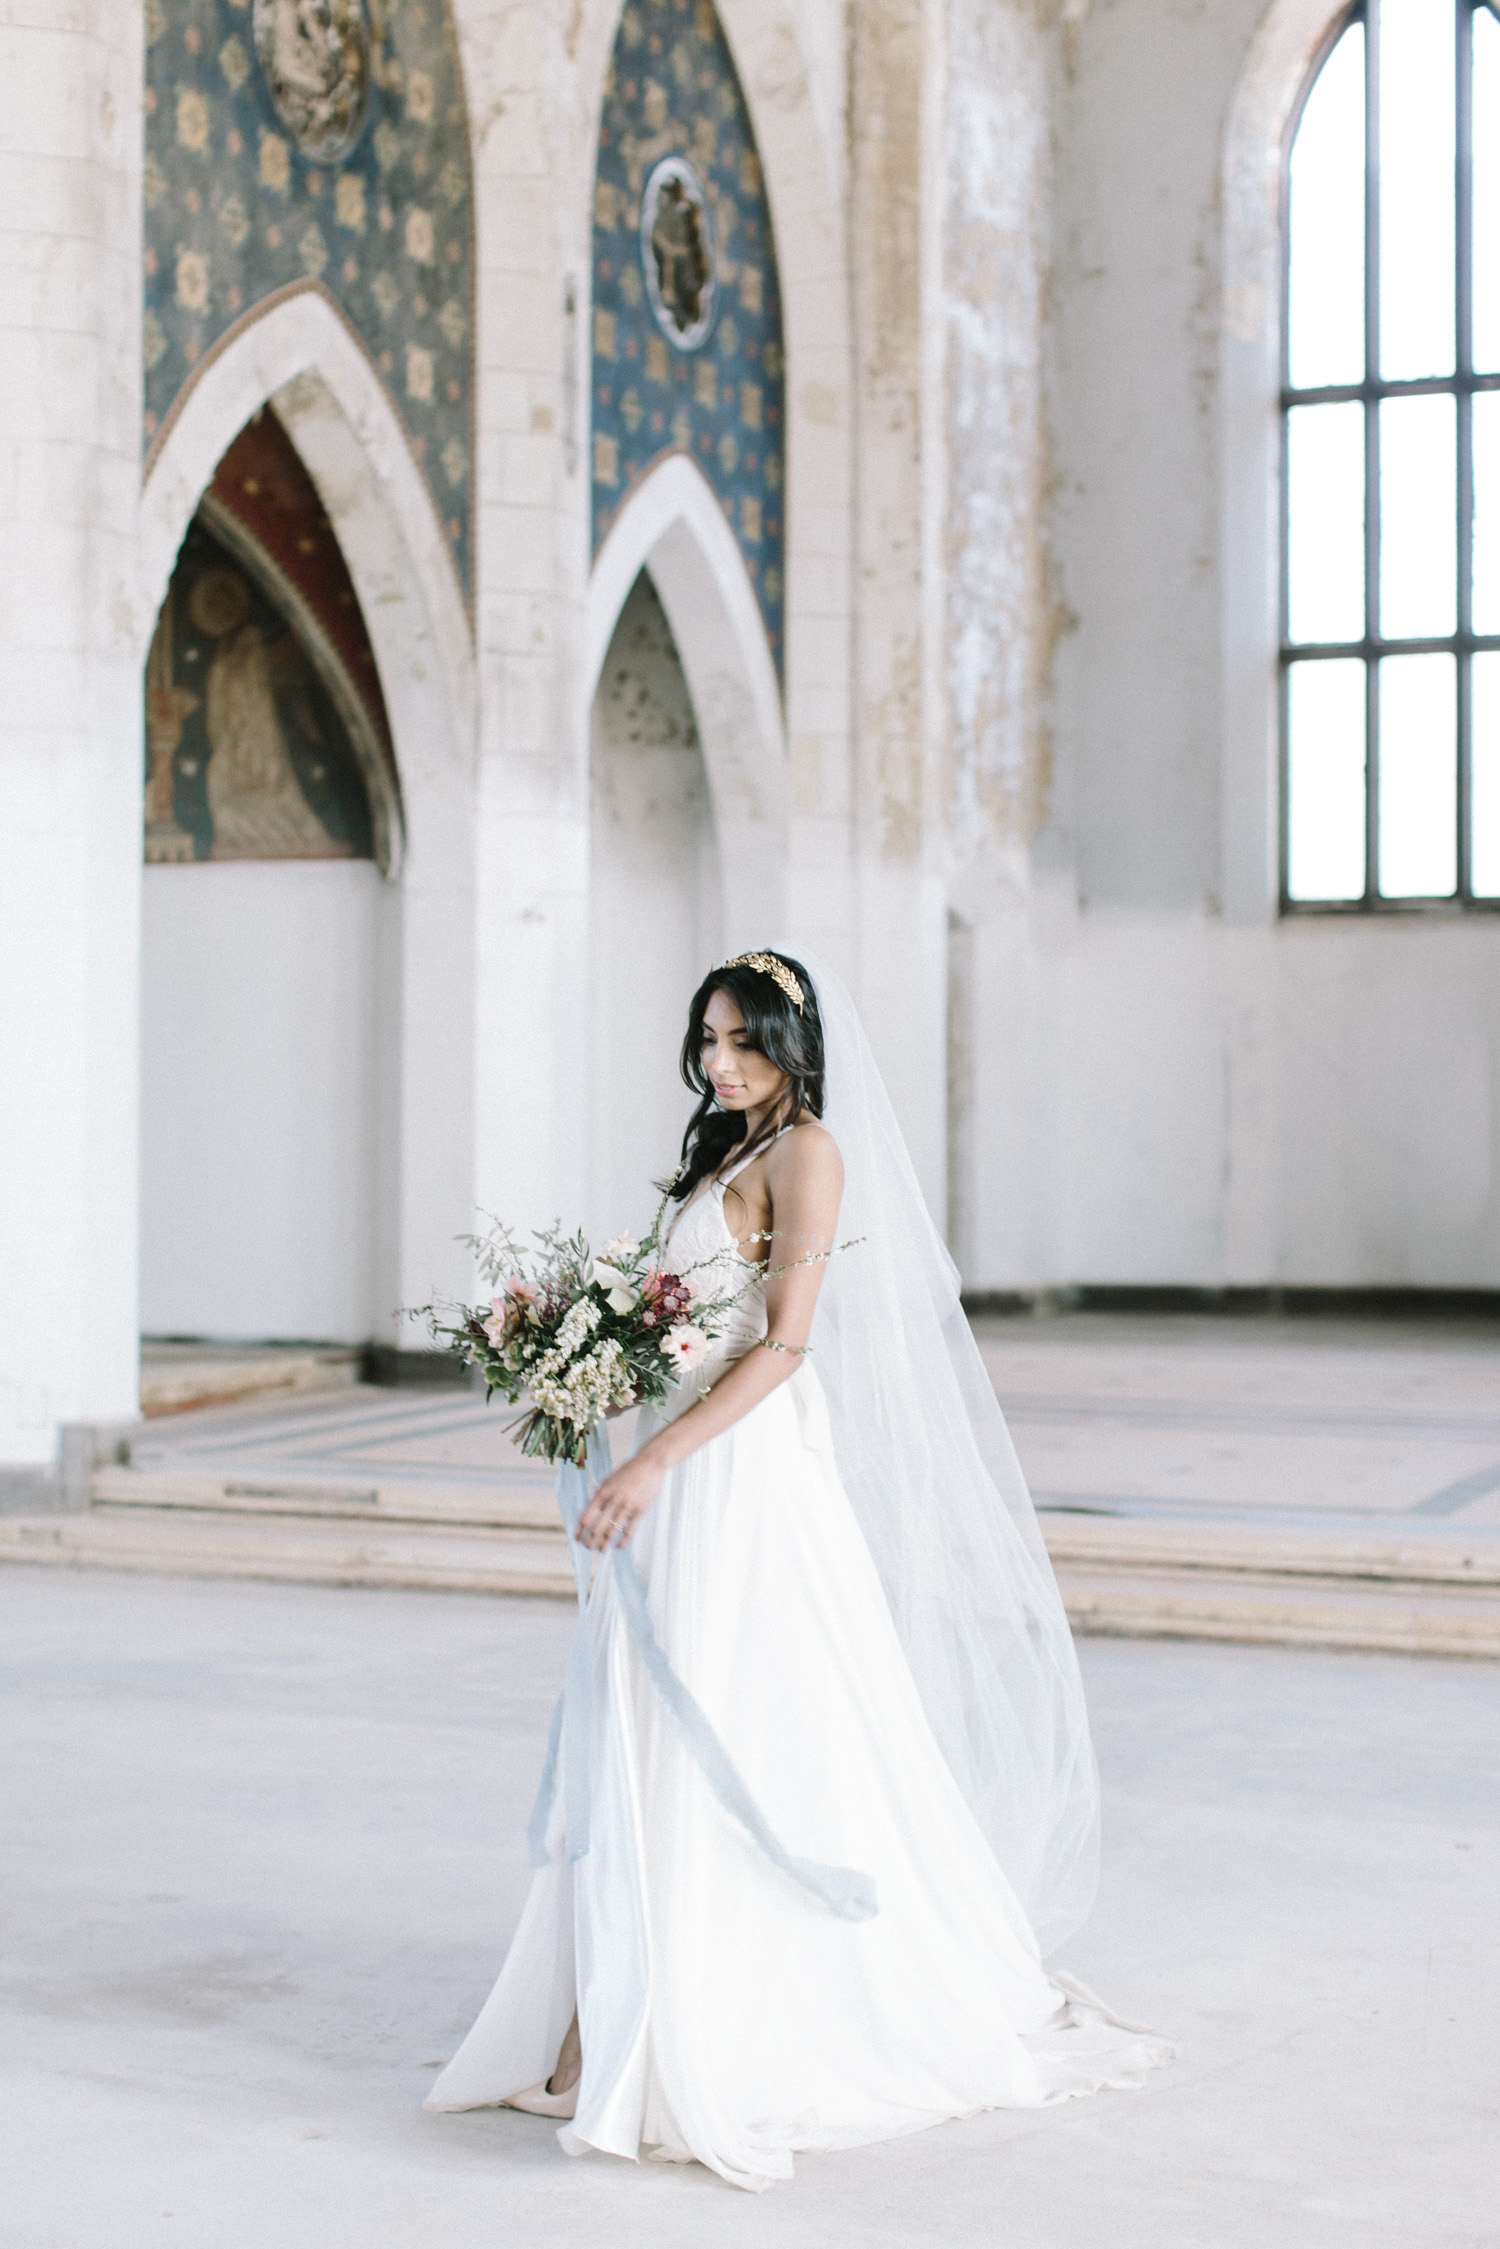 A bride twirls while holding her bouquet at her destination wedding in an abandoned cathedral